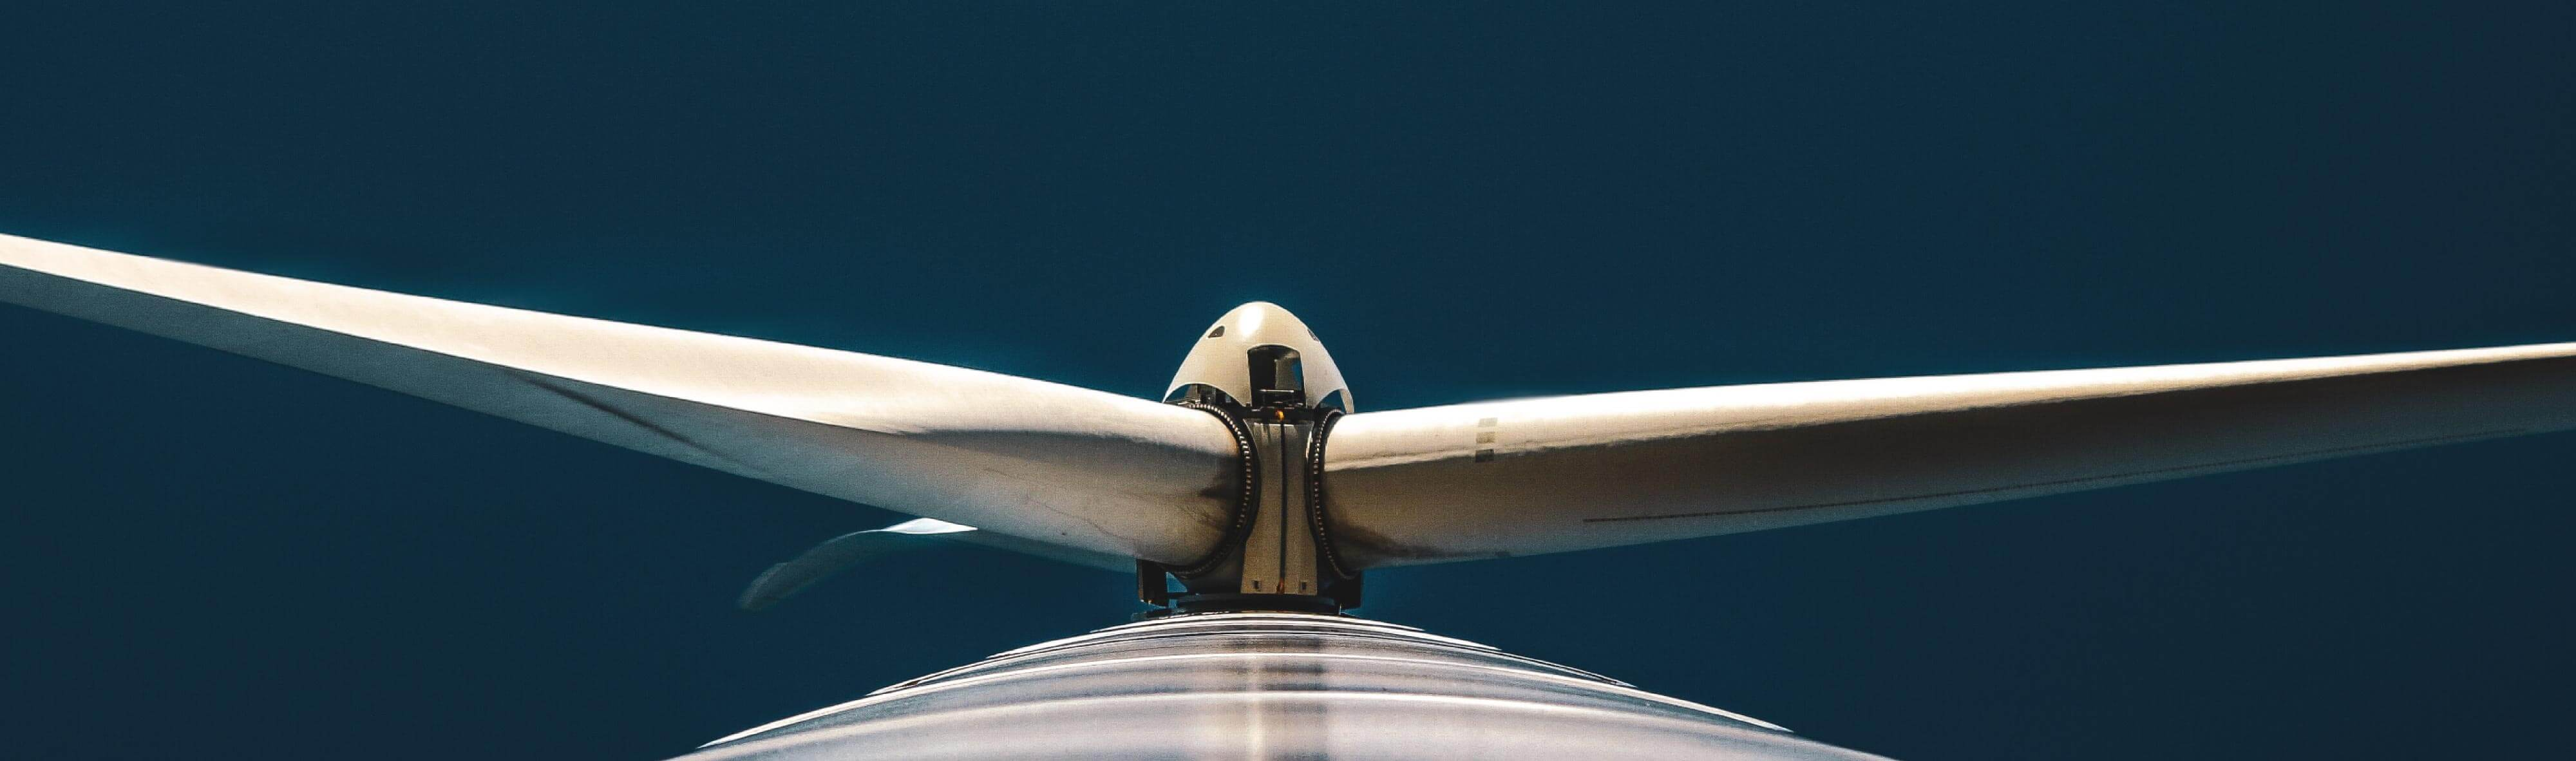 A dark blue sky acts as the background for this shot looking straight up at a wind turbine.